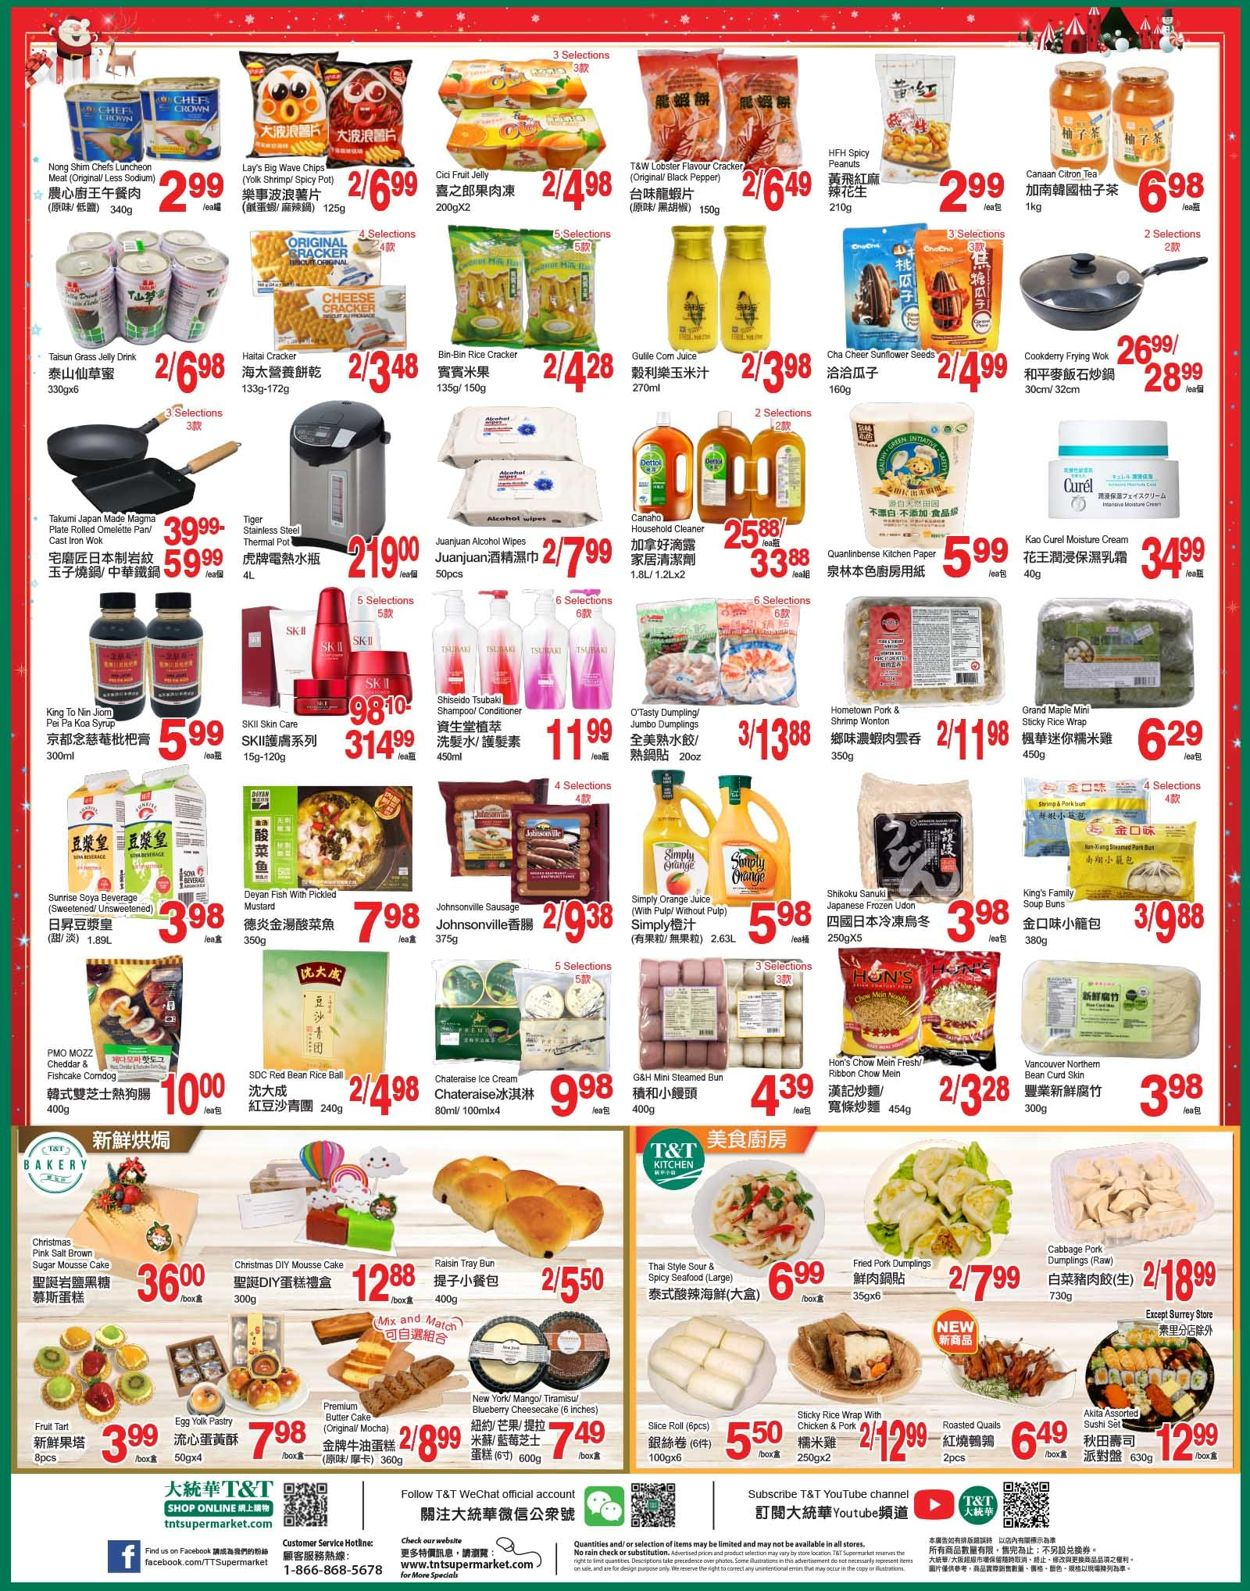 T&T Supermarket Christmas 2020 - British Columbia Flyer - 12/18-12/24/2020 (Page 3)